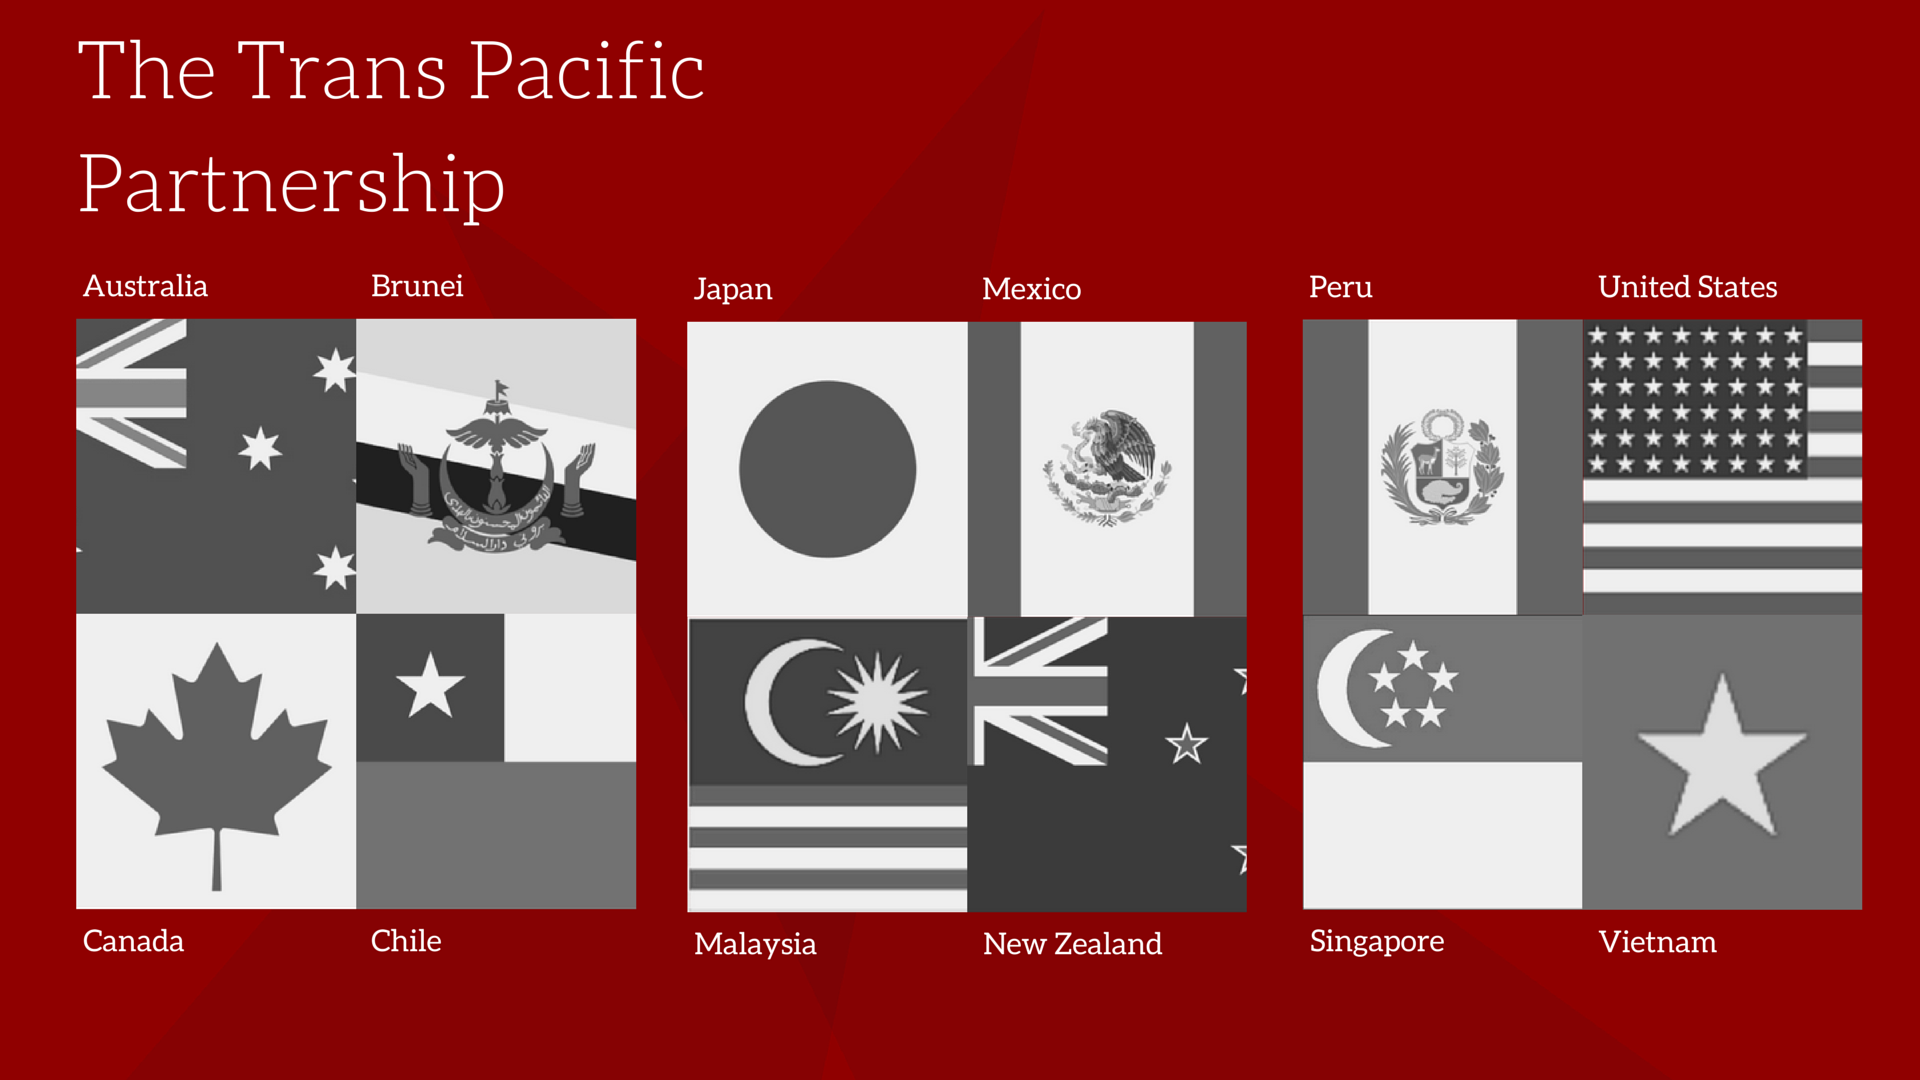 what countries are in the trans pacific partnership?